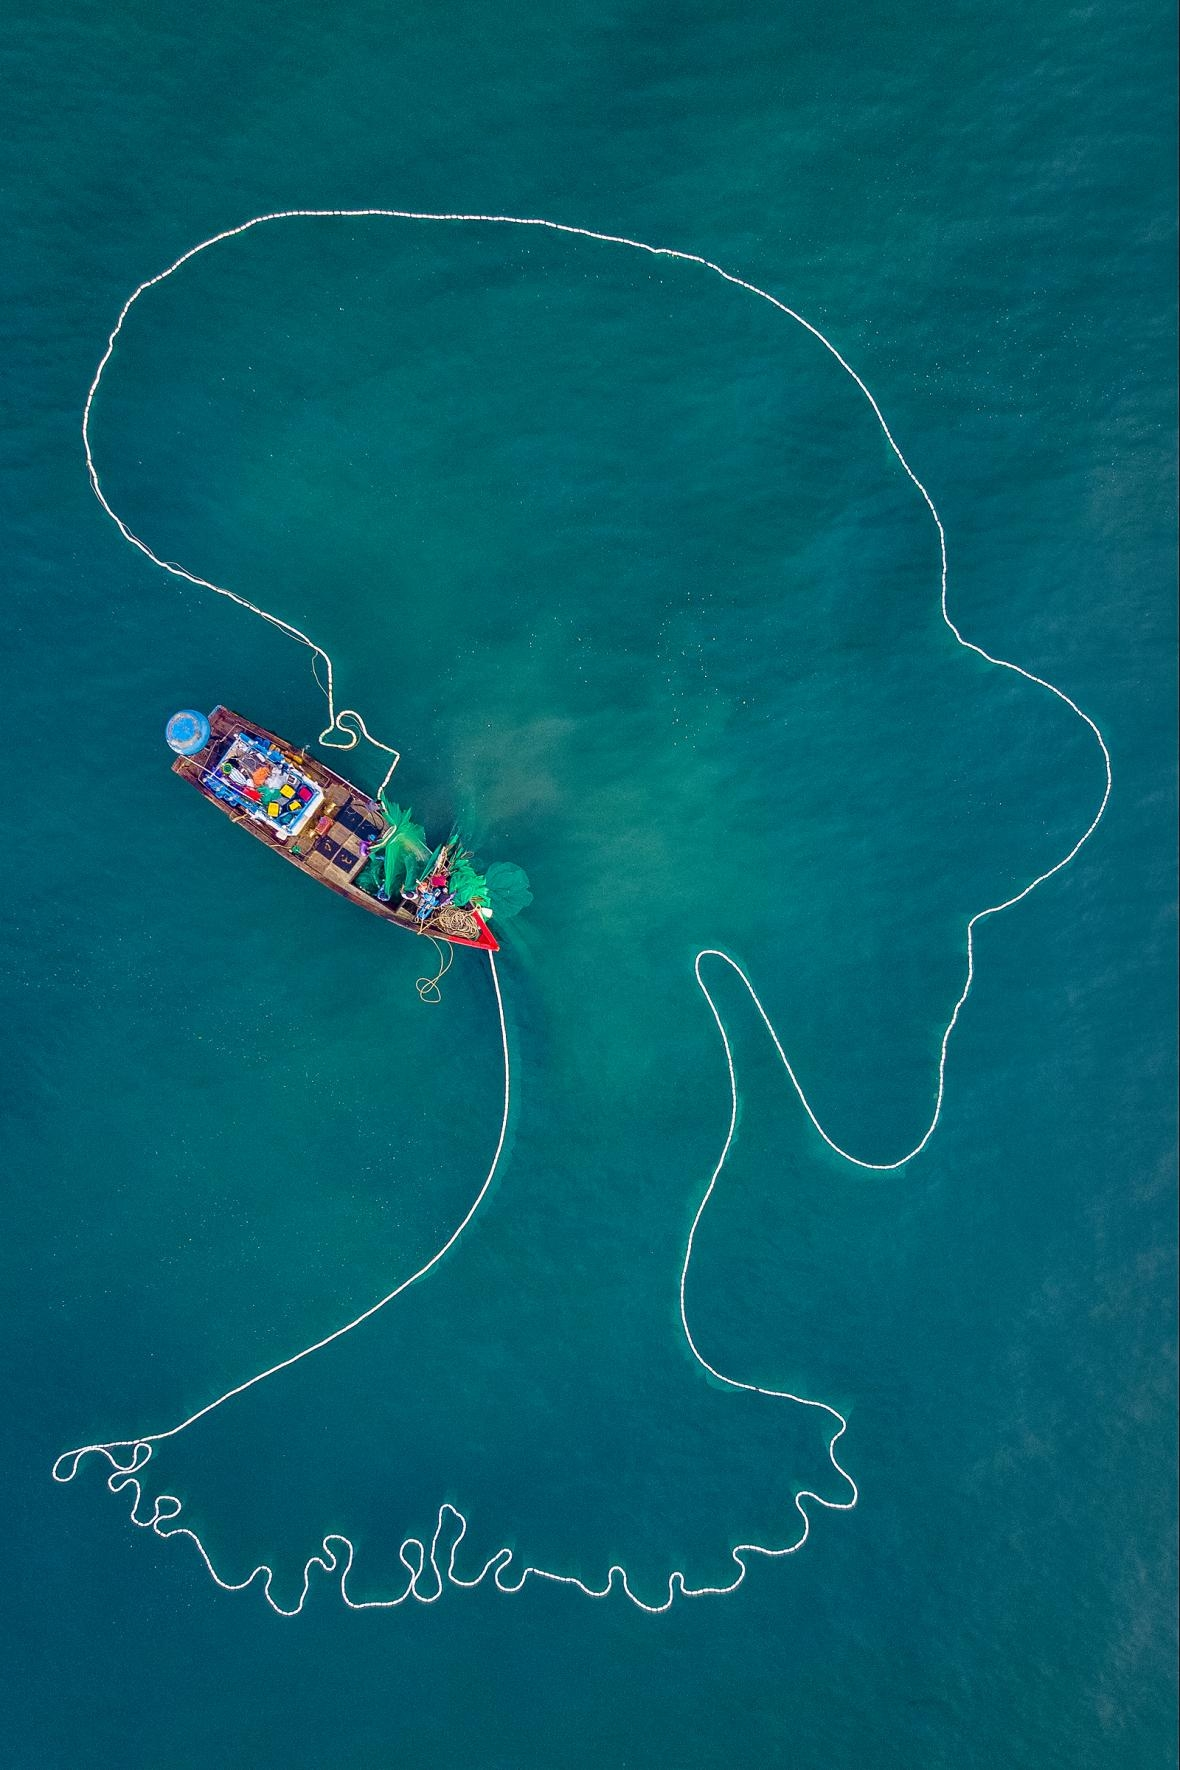 five photos taken by vietnamese photographers won aerial photography awards